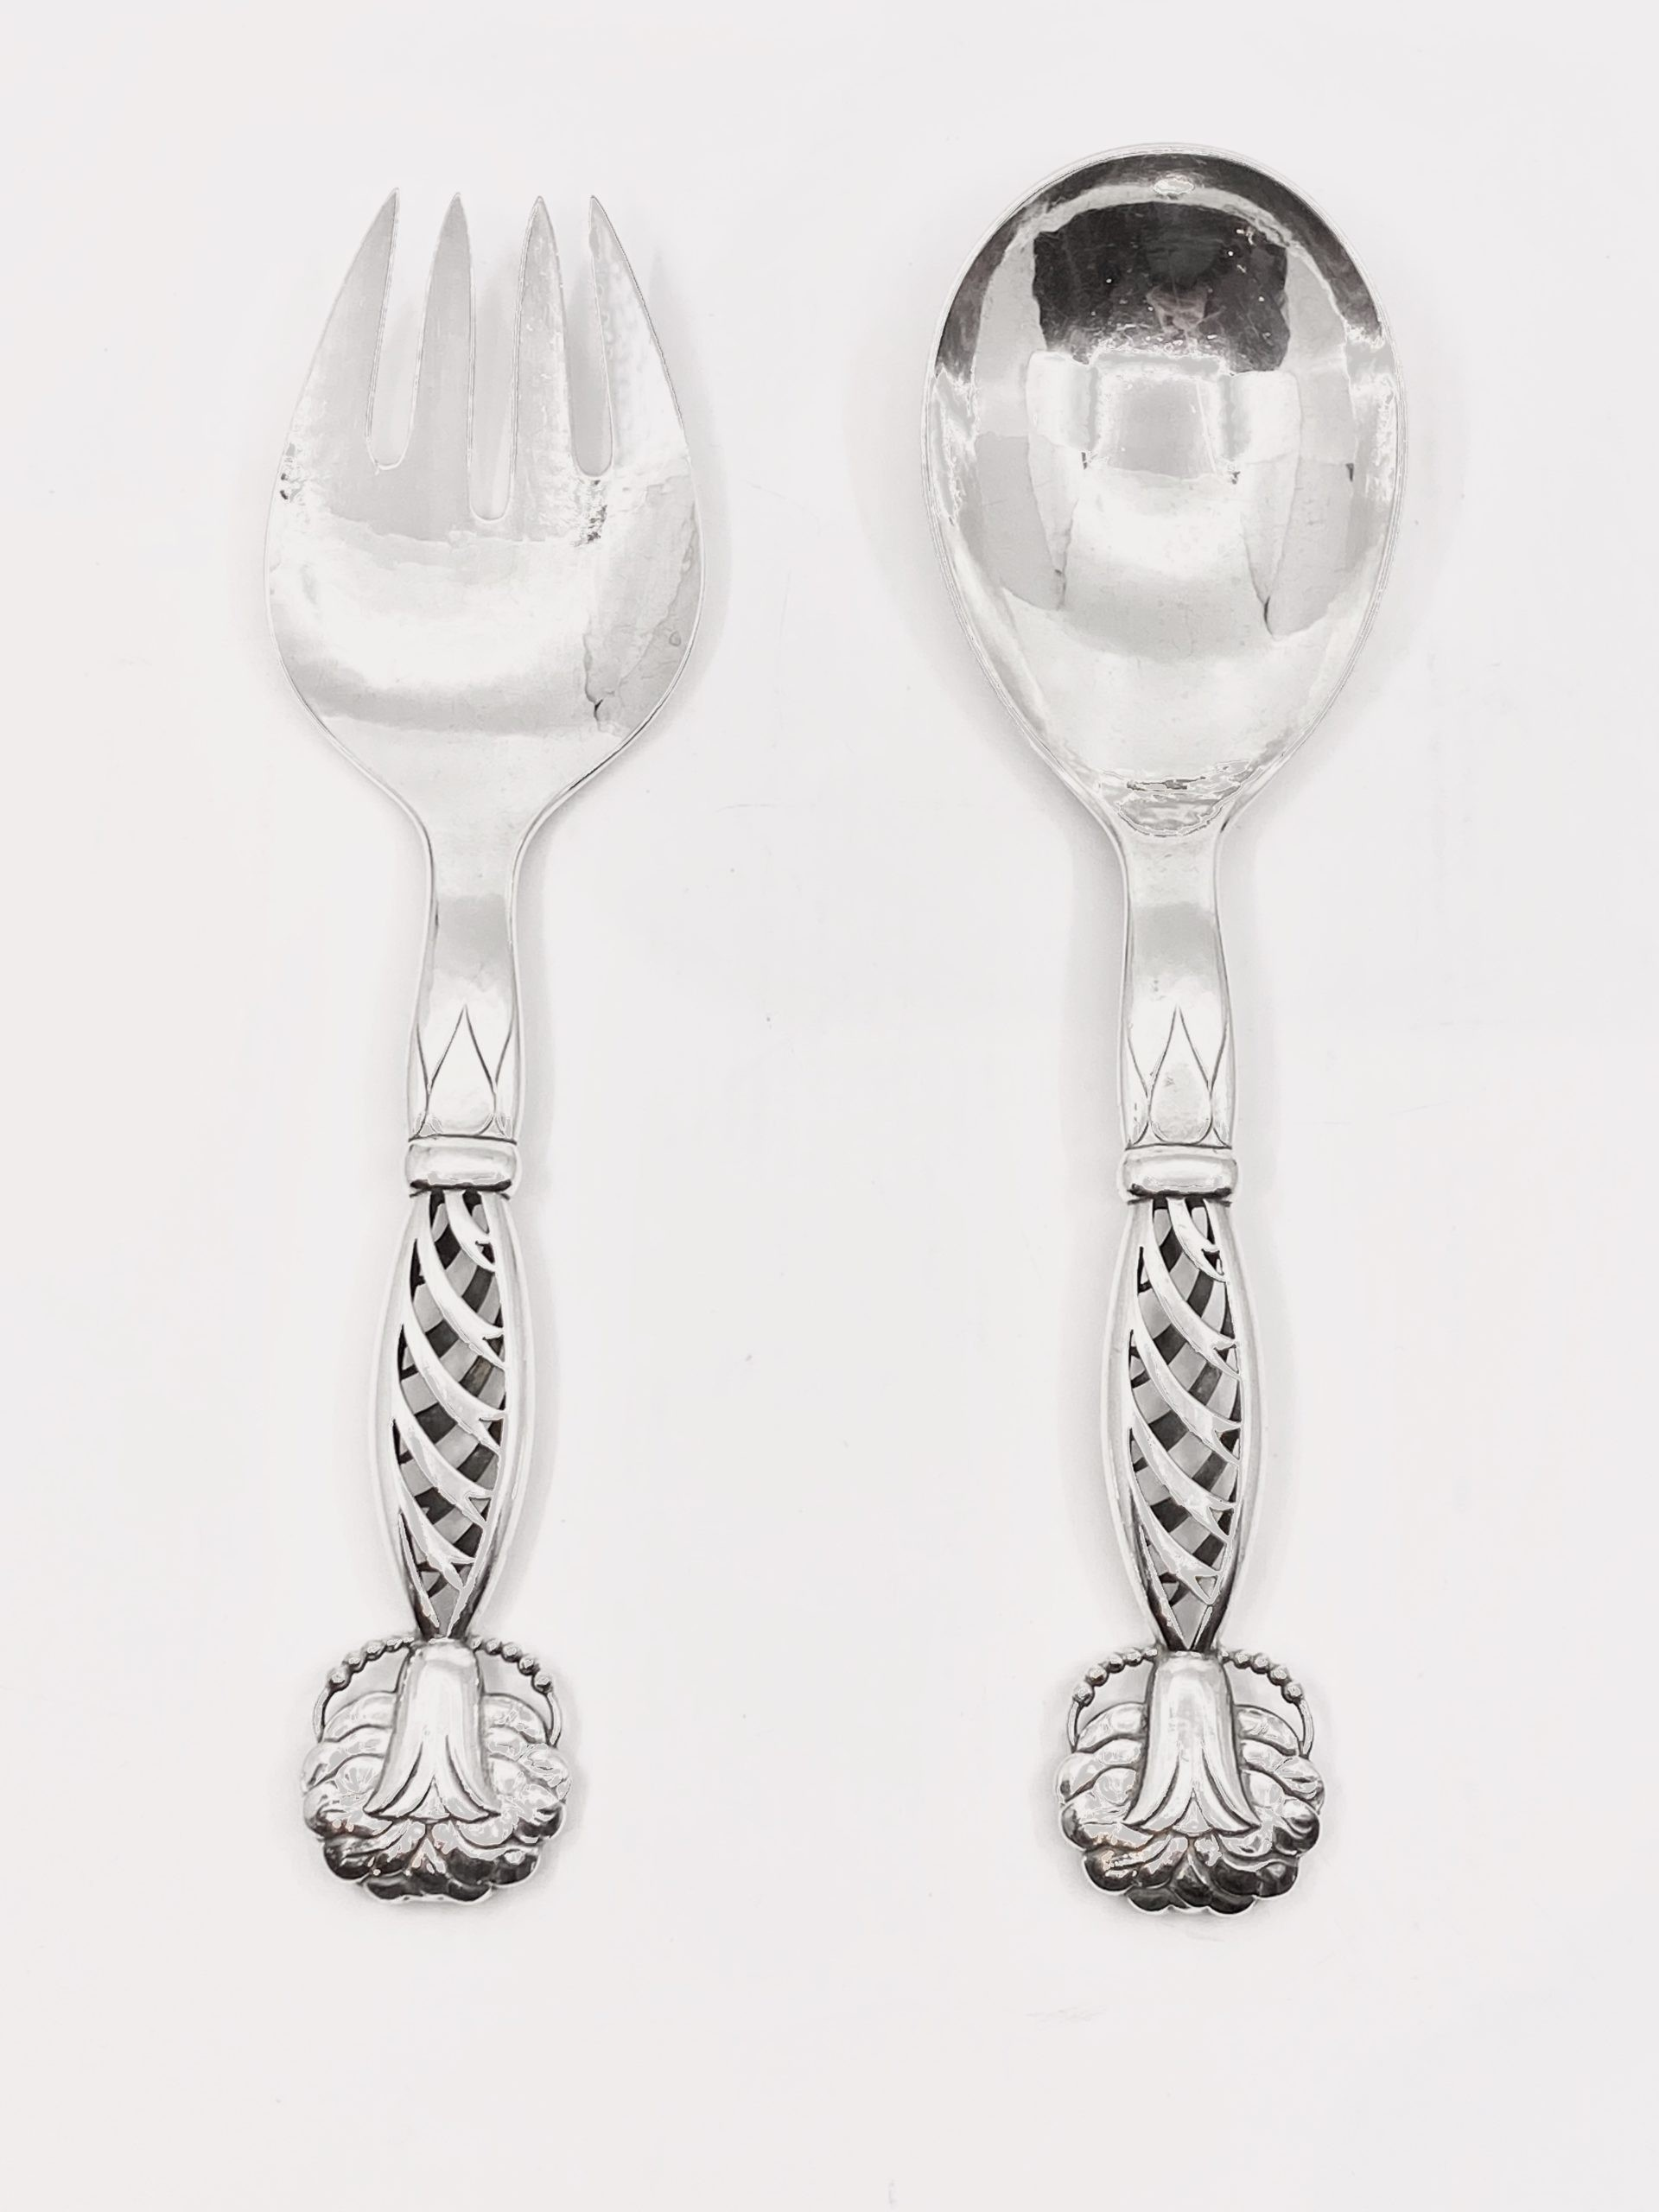 Large Serving Fork Old English  Pattern Silver Plated 1920s 103312E